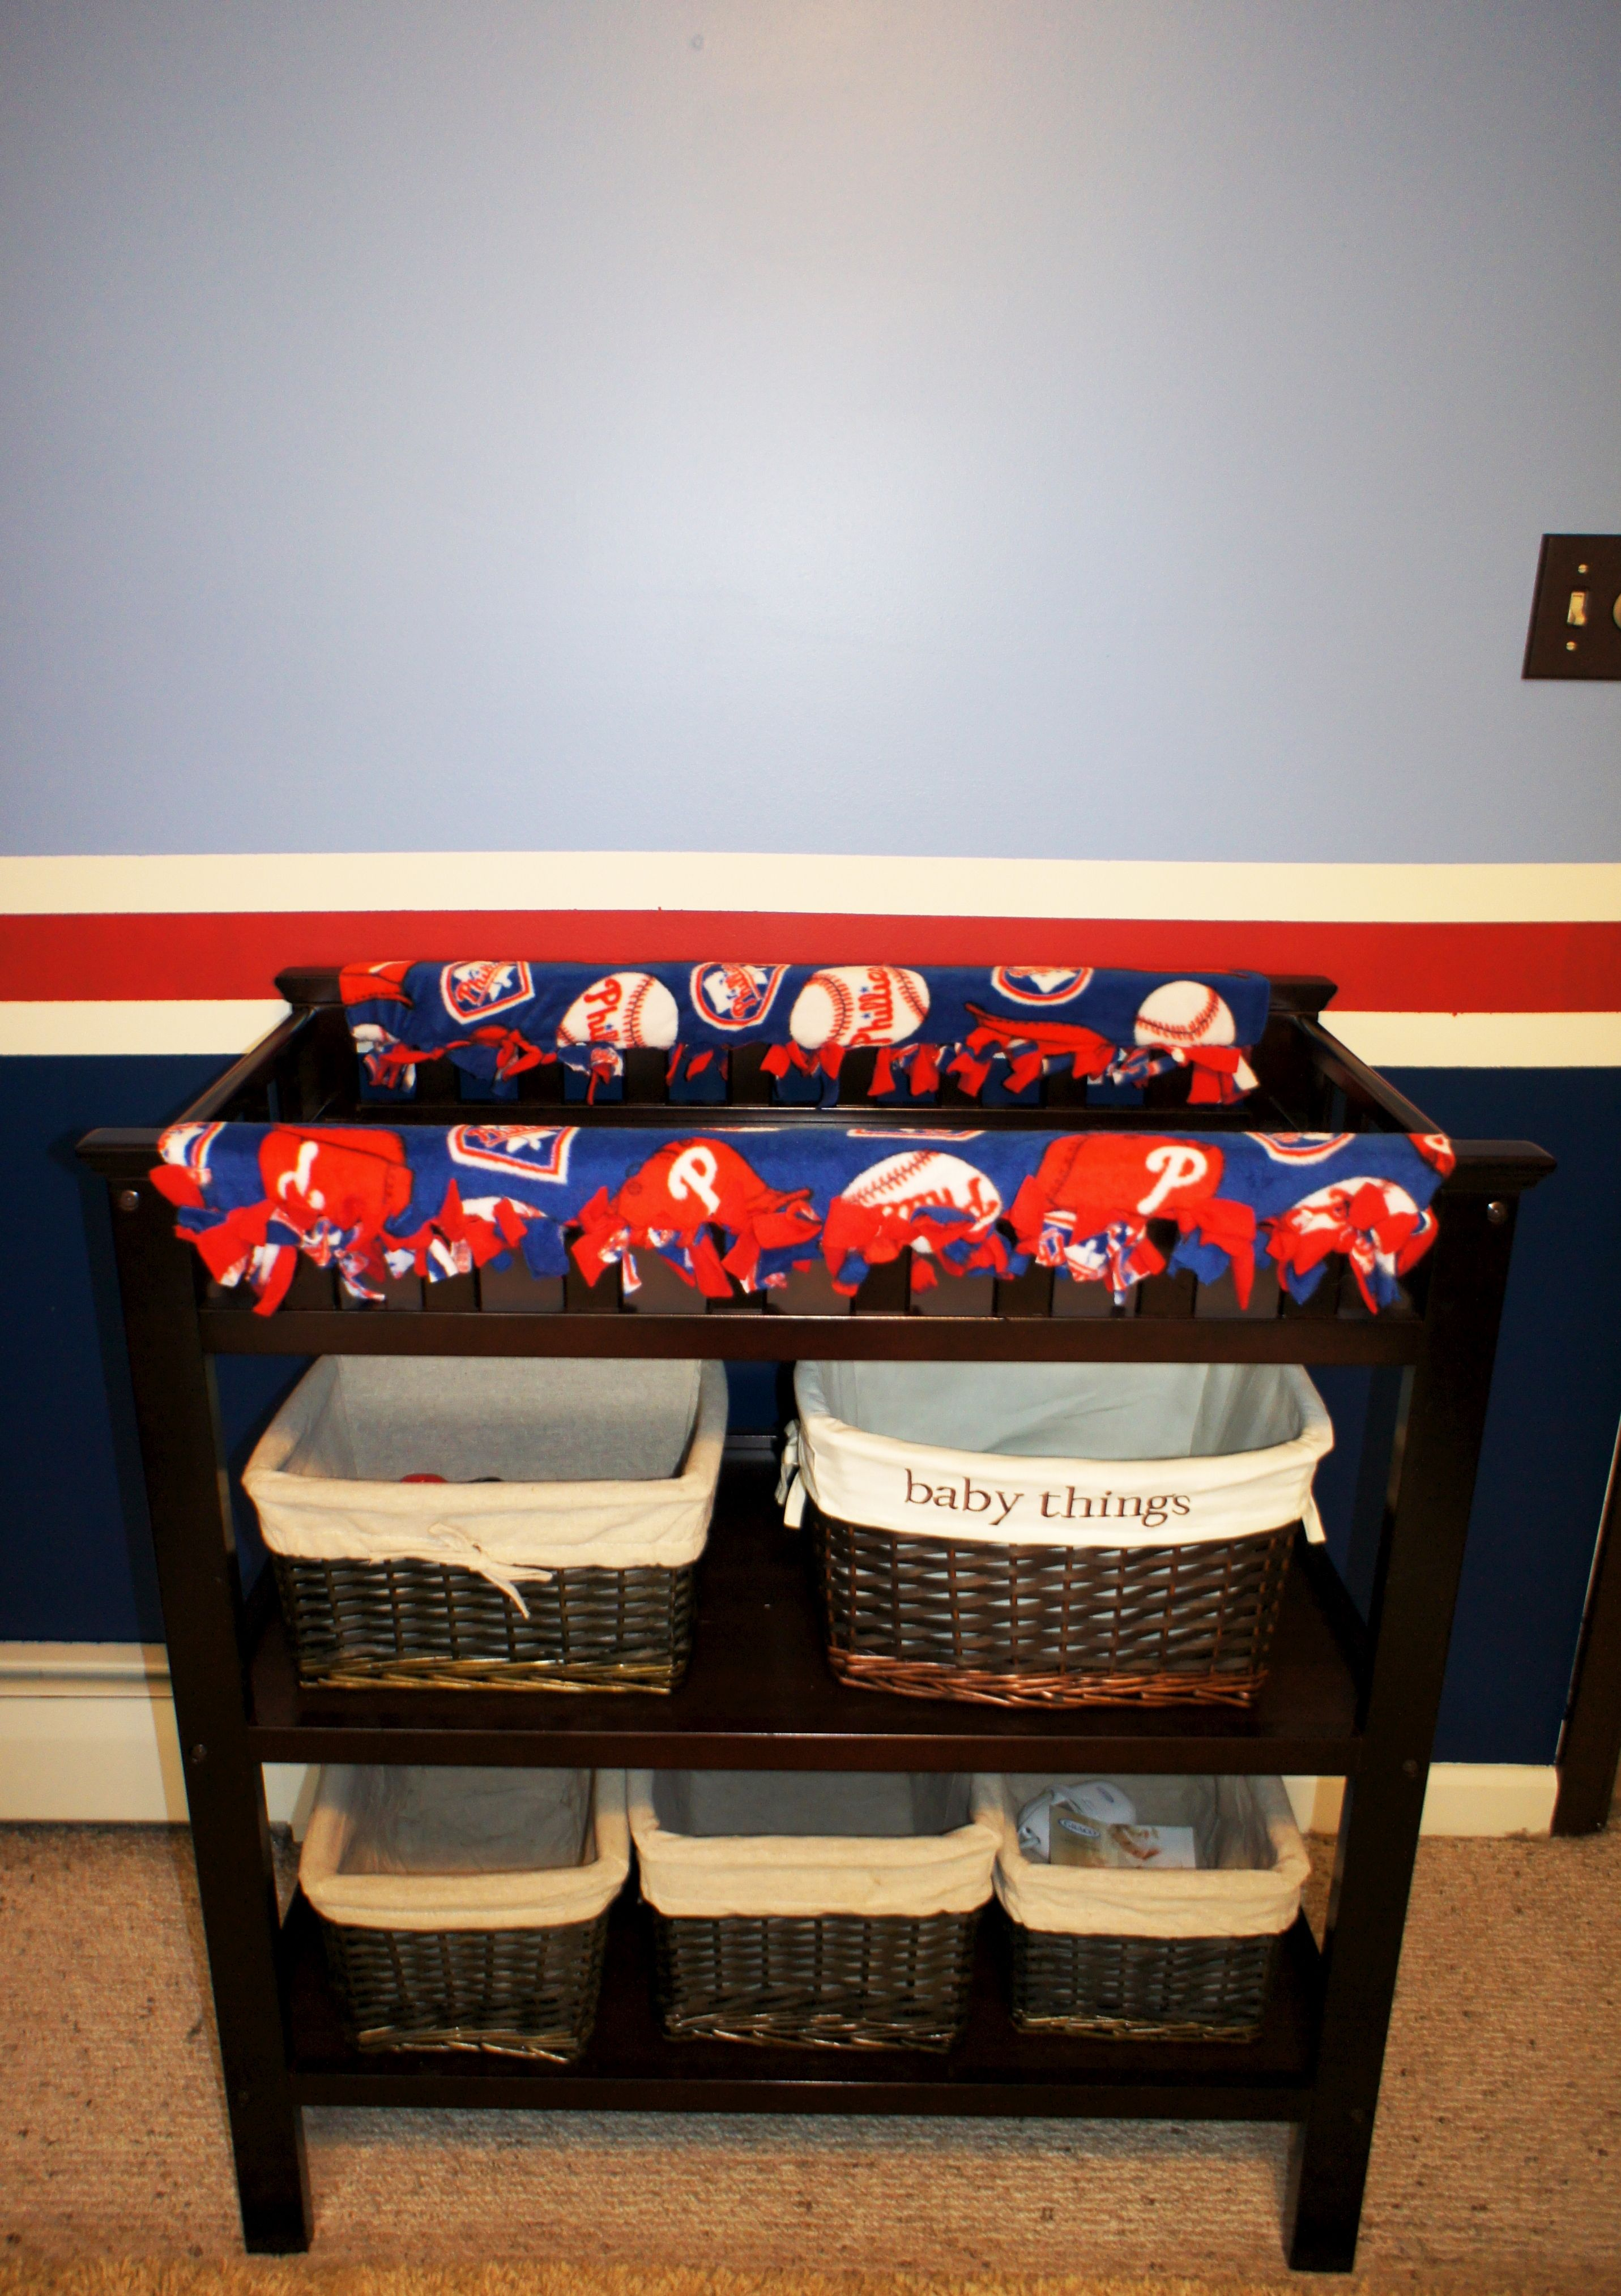 DIY changing table rail covers